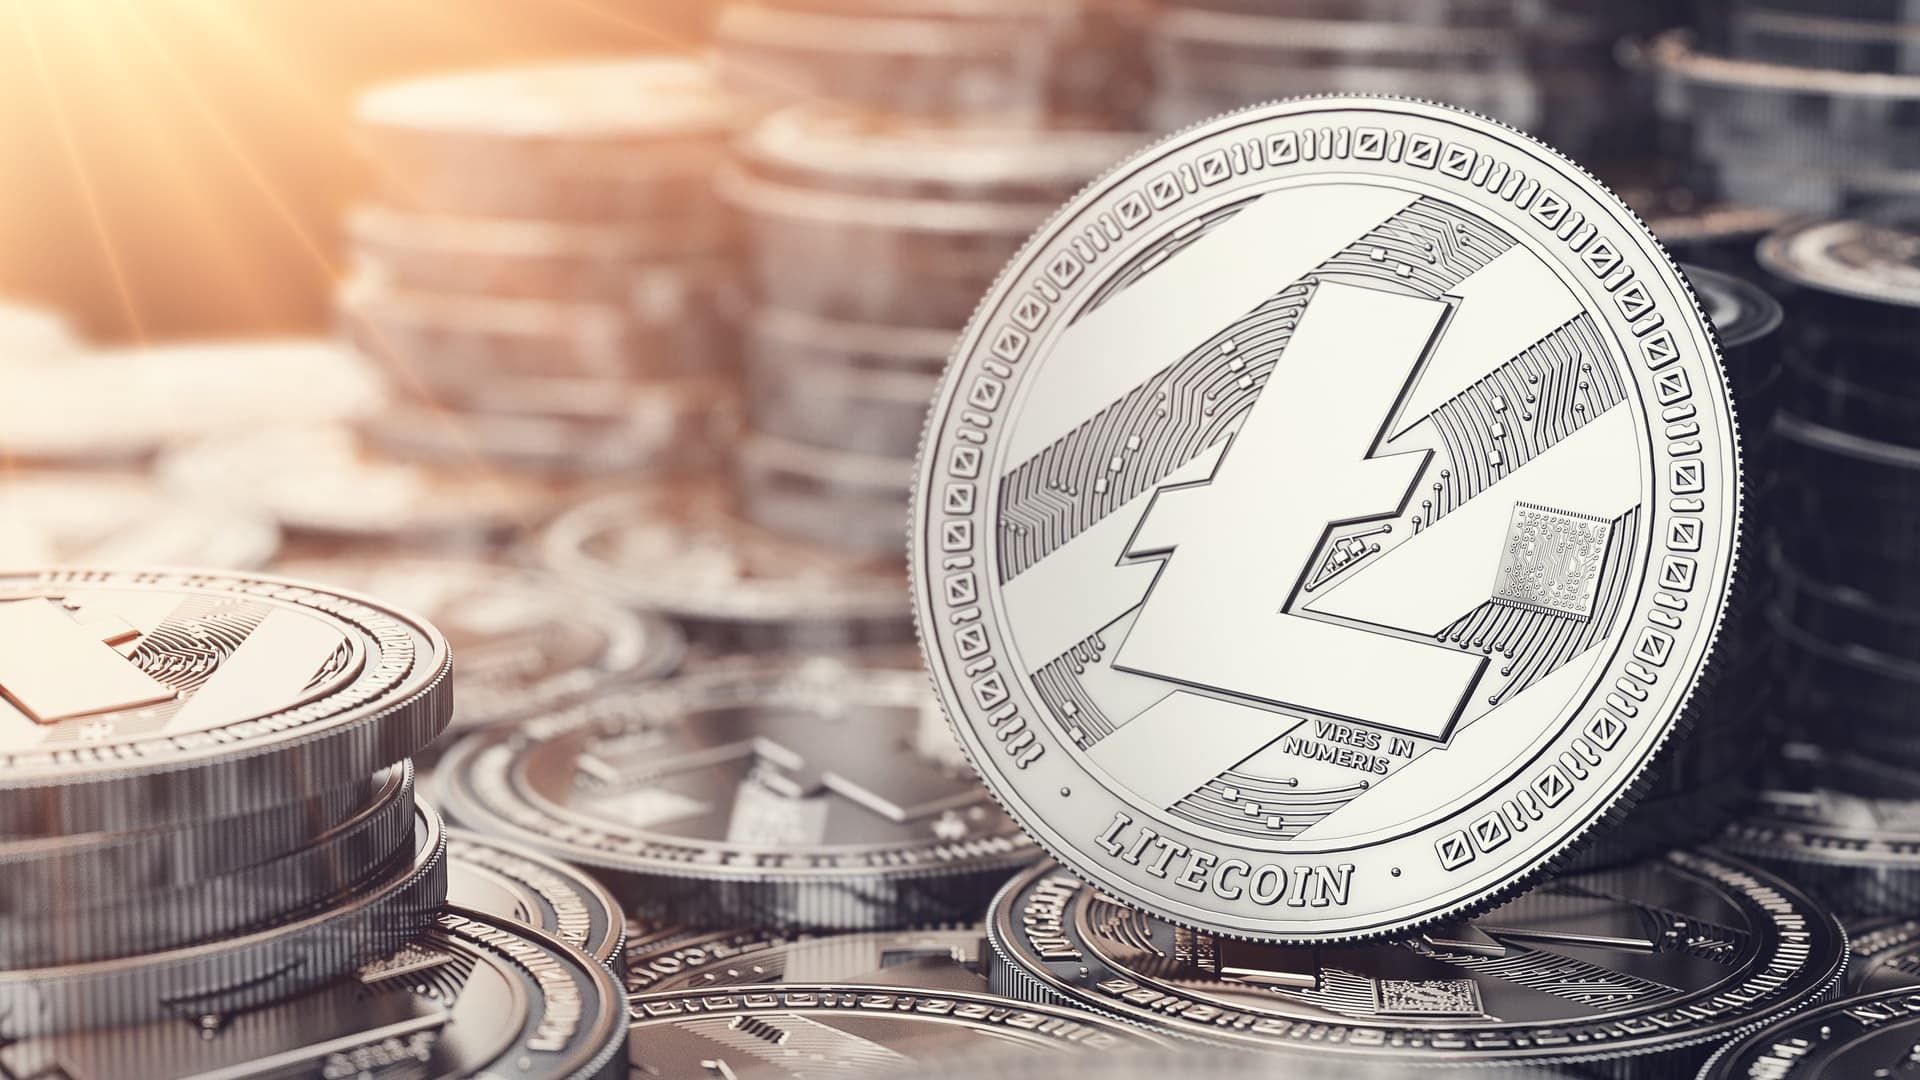 Picture of Litecoin coins stacked together. Newegg now accepts Litecoins through BitPay